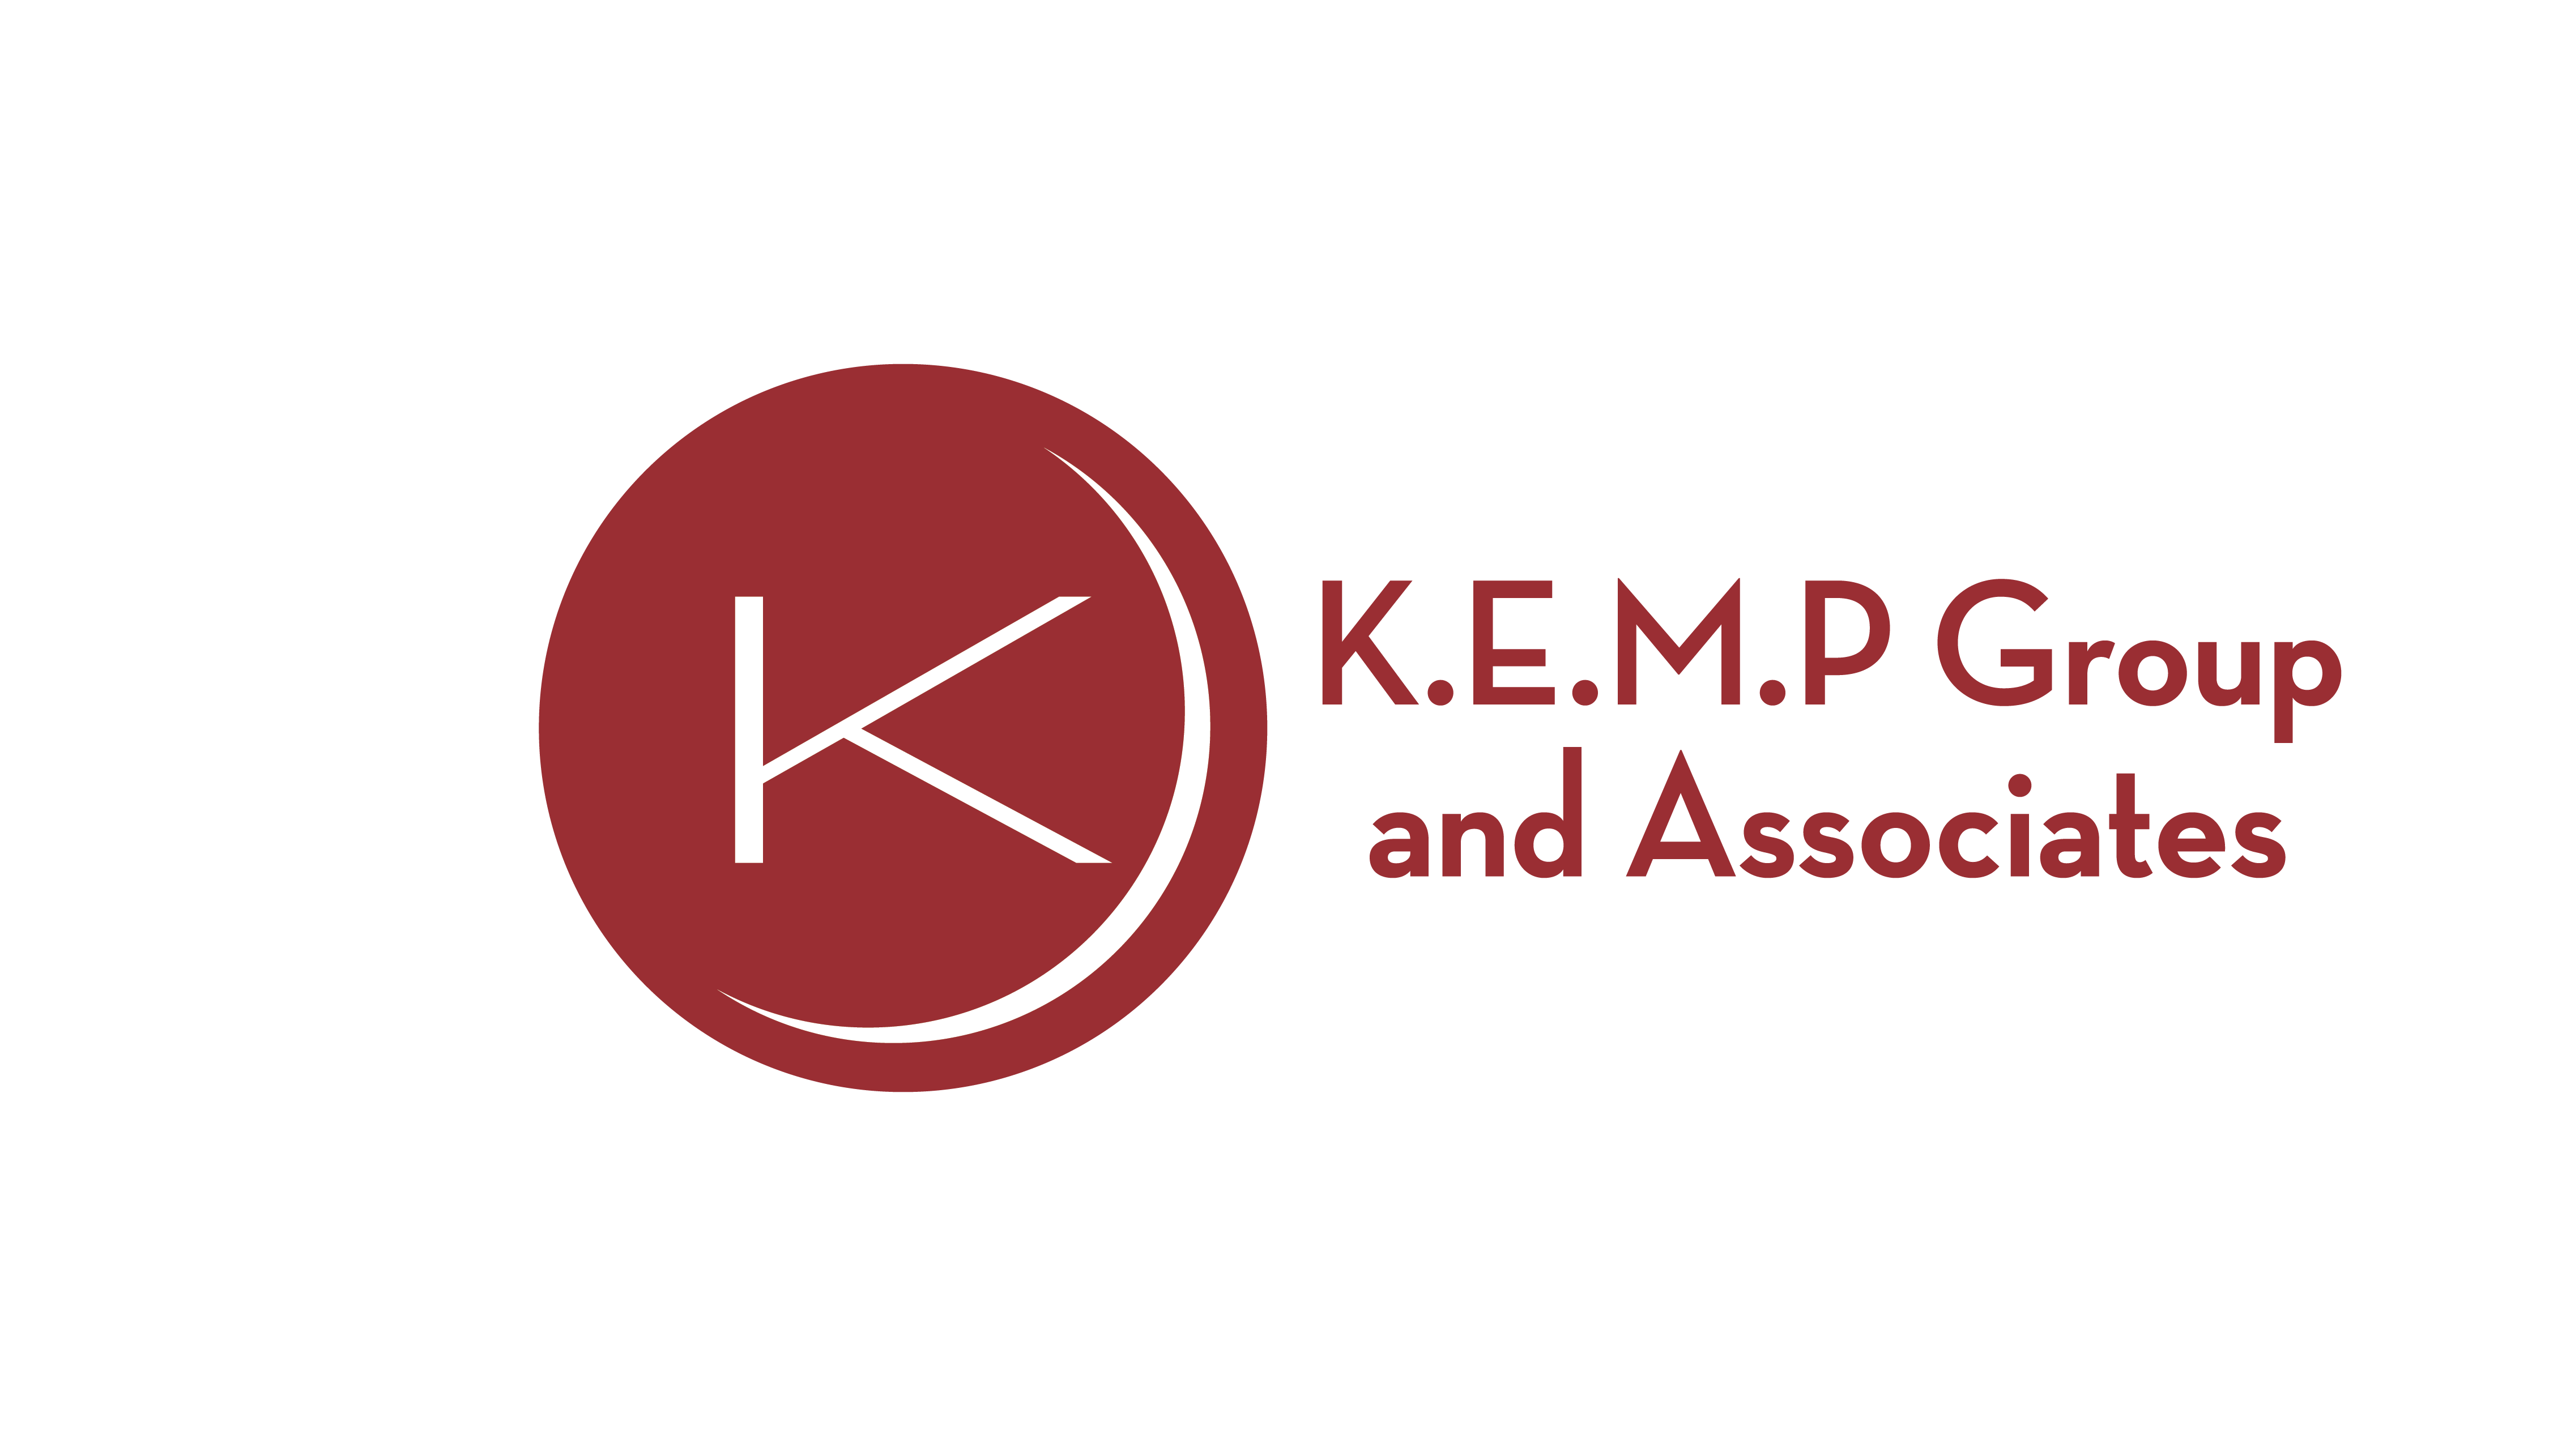 KEMP Group & Associates | All in One Digital Marketing Services ...